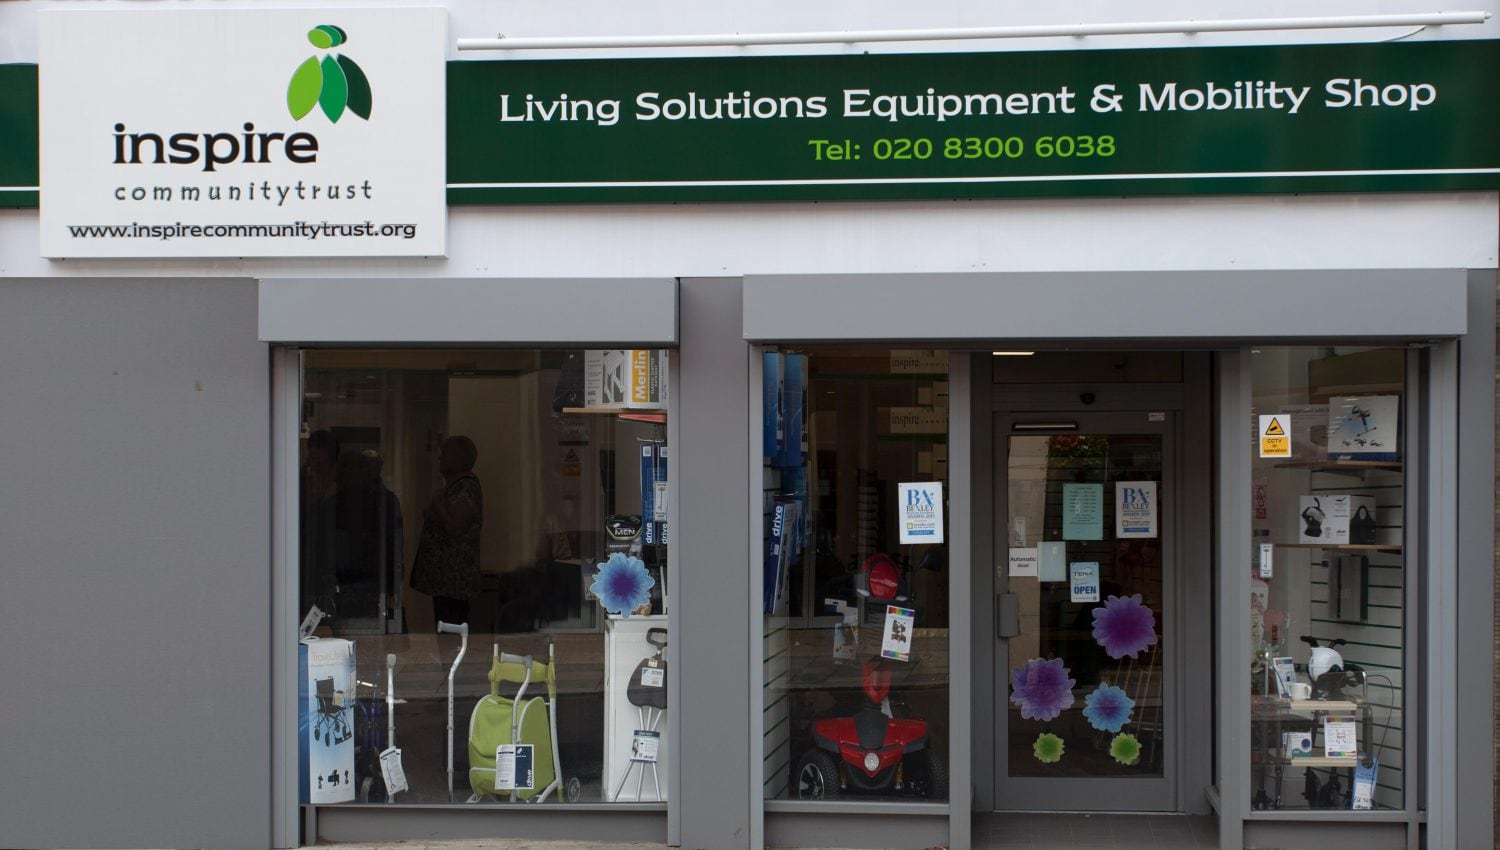 The Inspire Living Solutions Community Equipment & Mobility shop front.